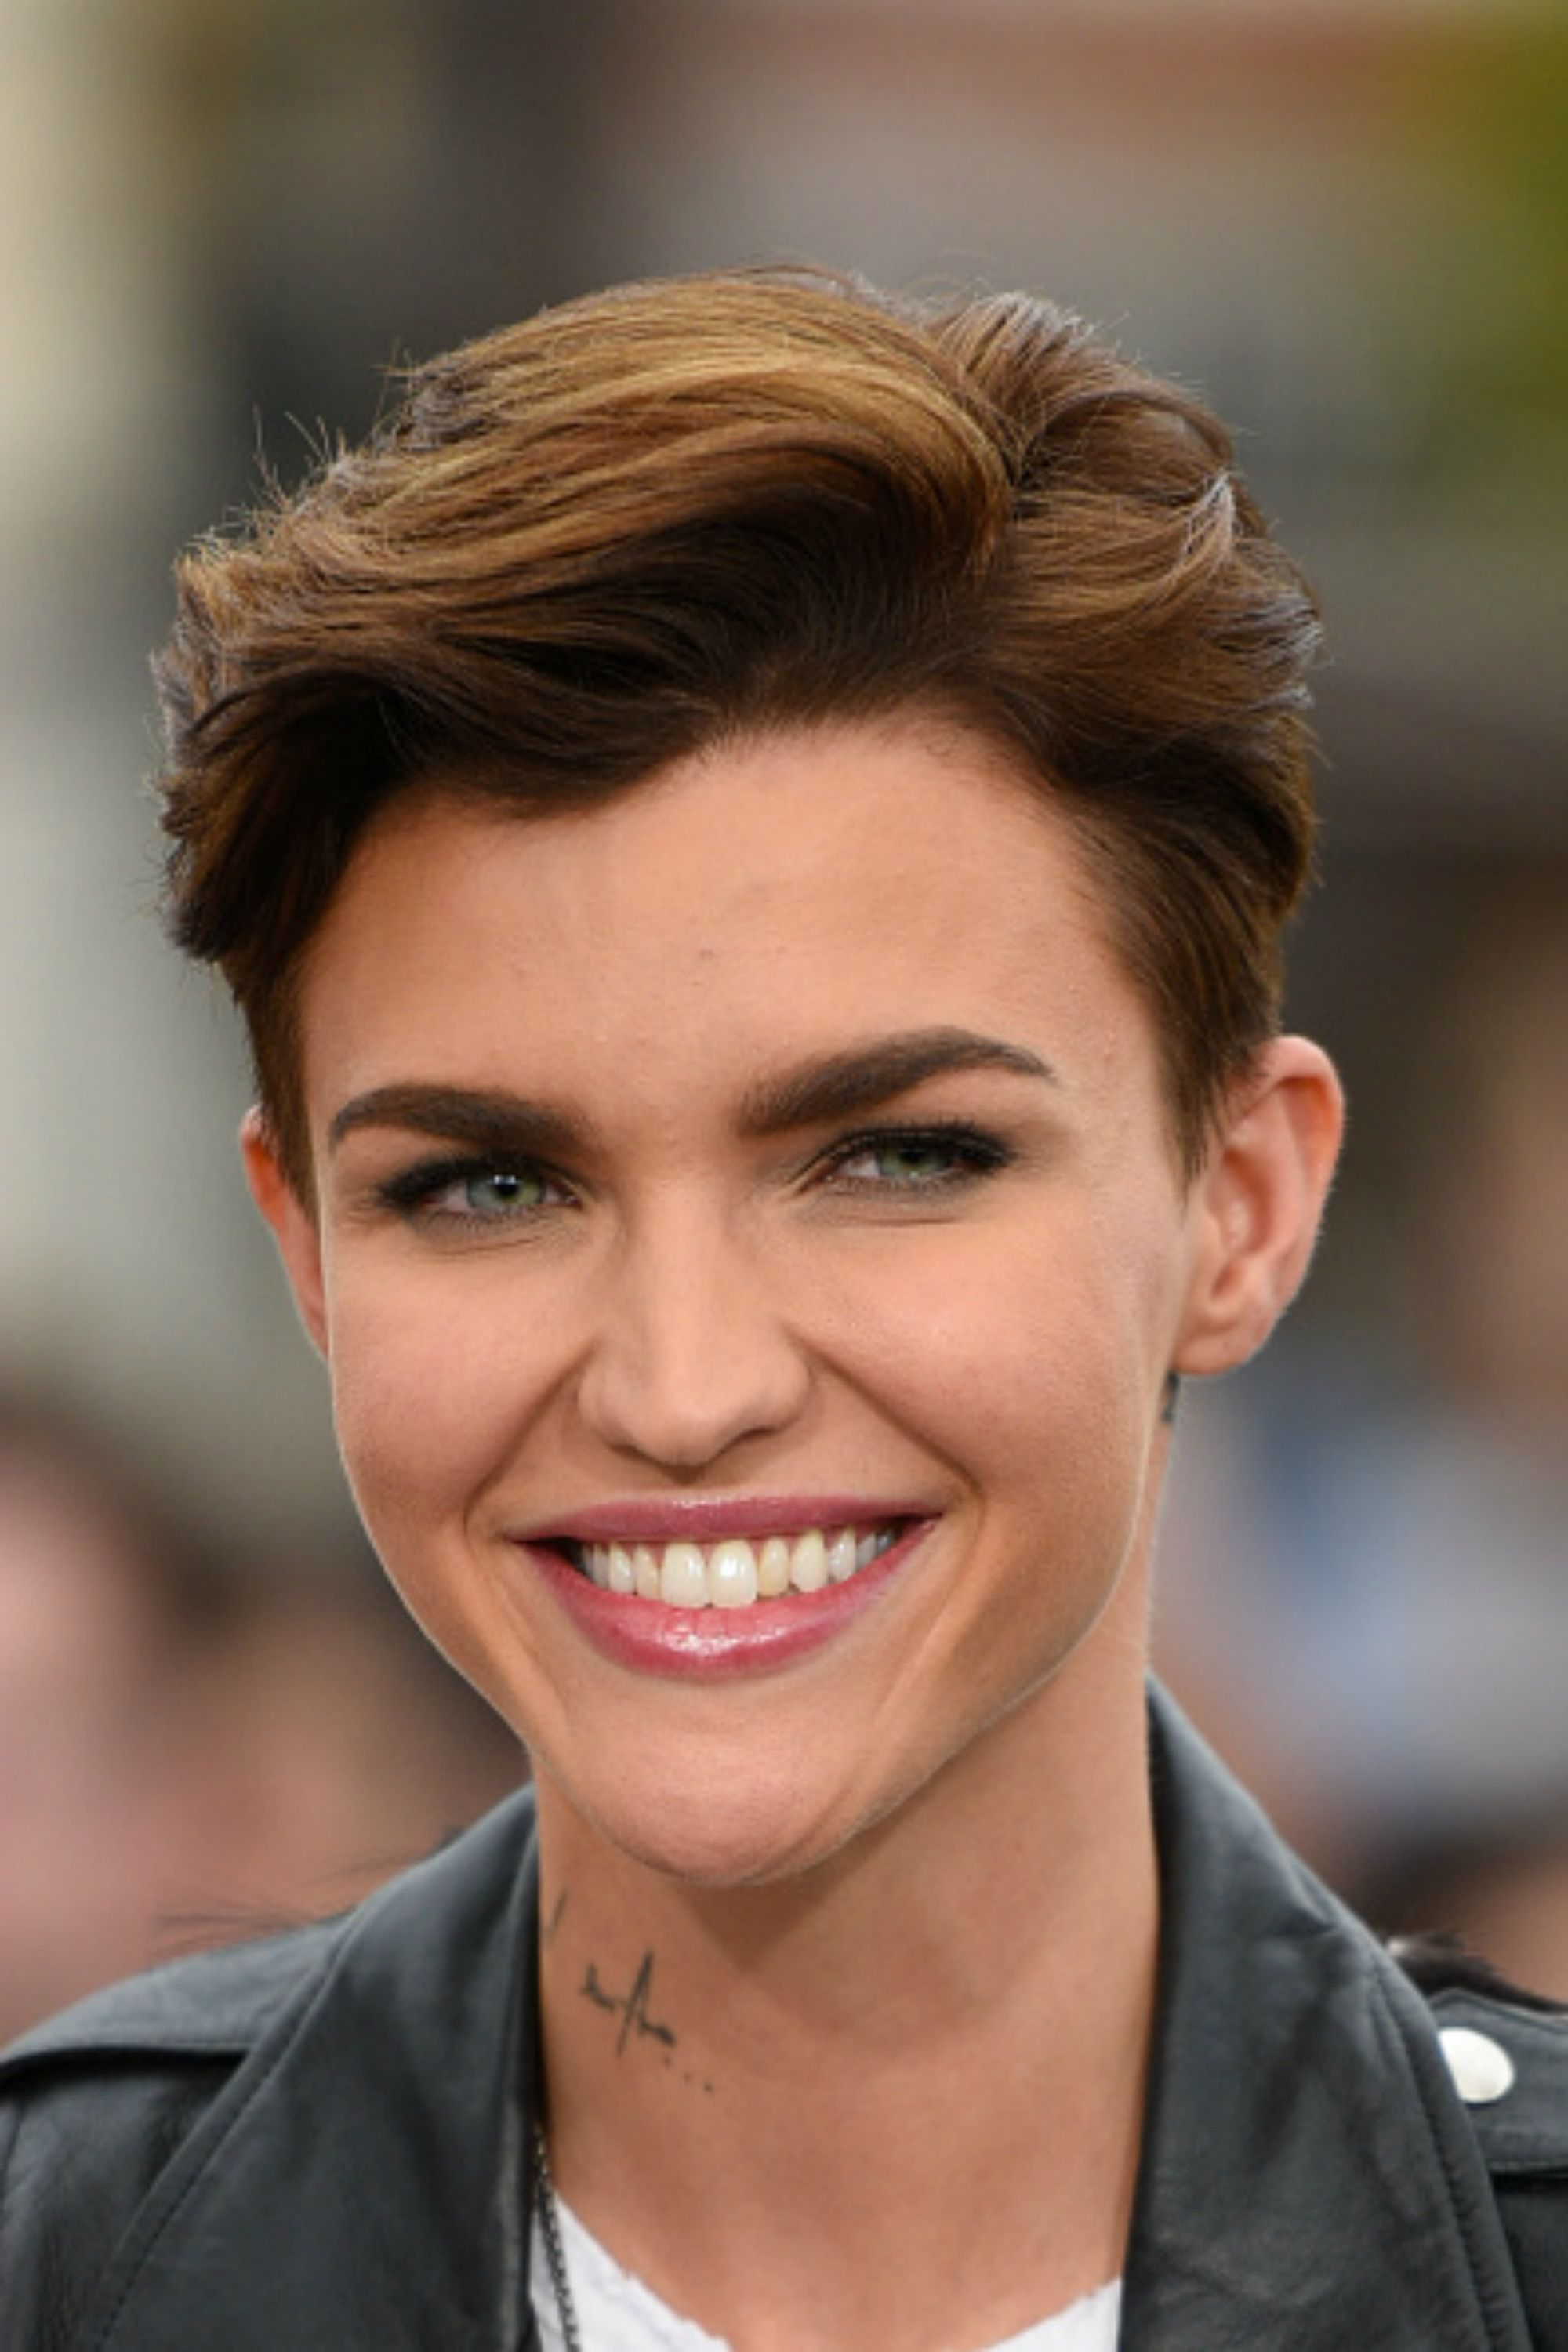 30 Short Hairstyles For Thick Hair 2017 – Women's Haircuts For Short With Super Short Hairstyles For Round Faces (View 3 of 25)